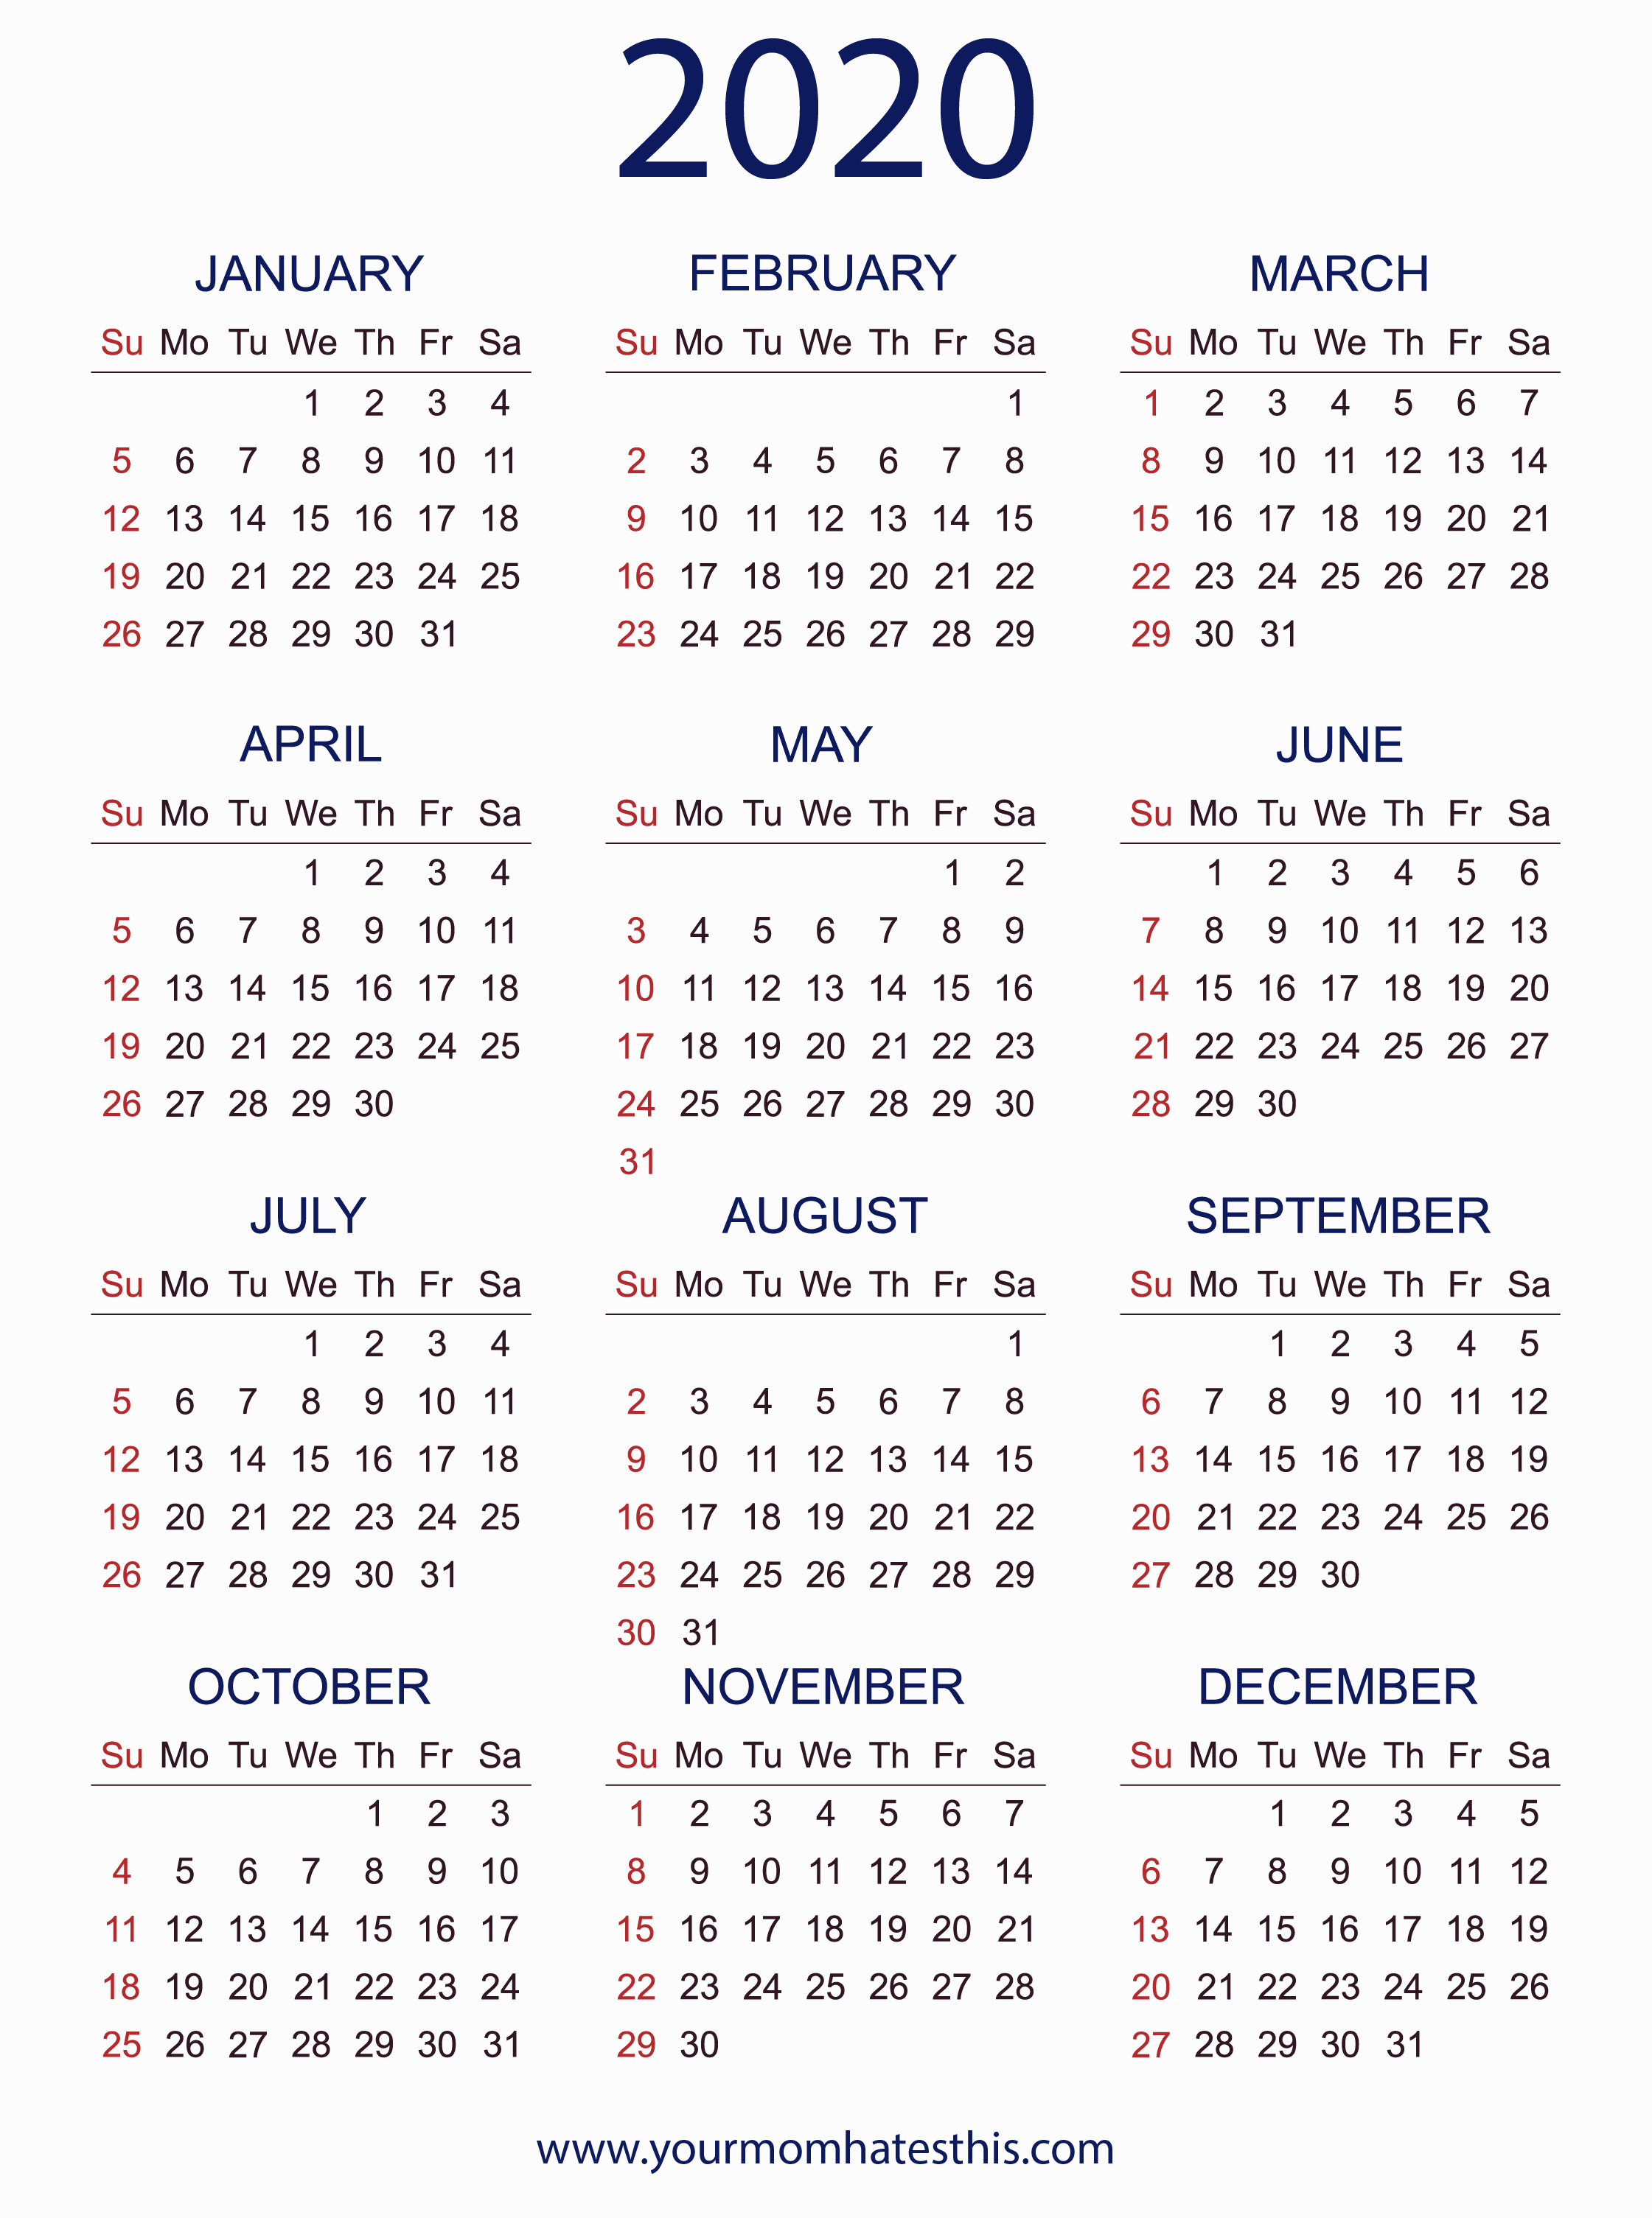 2020 Calendars In Pdf - Download Templates Of Calendar 2020 inside 2020 Calendar Vertical